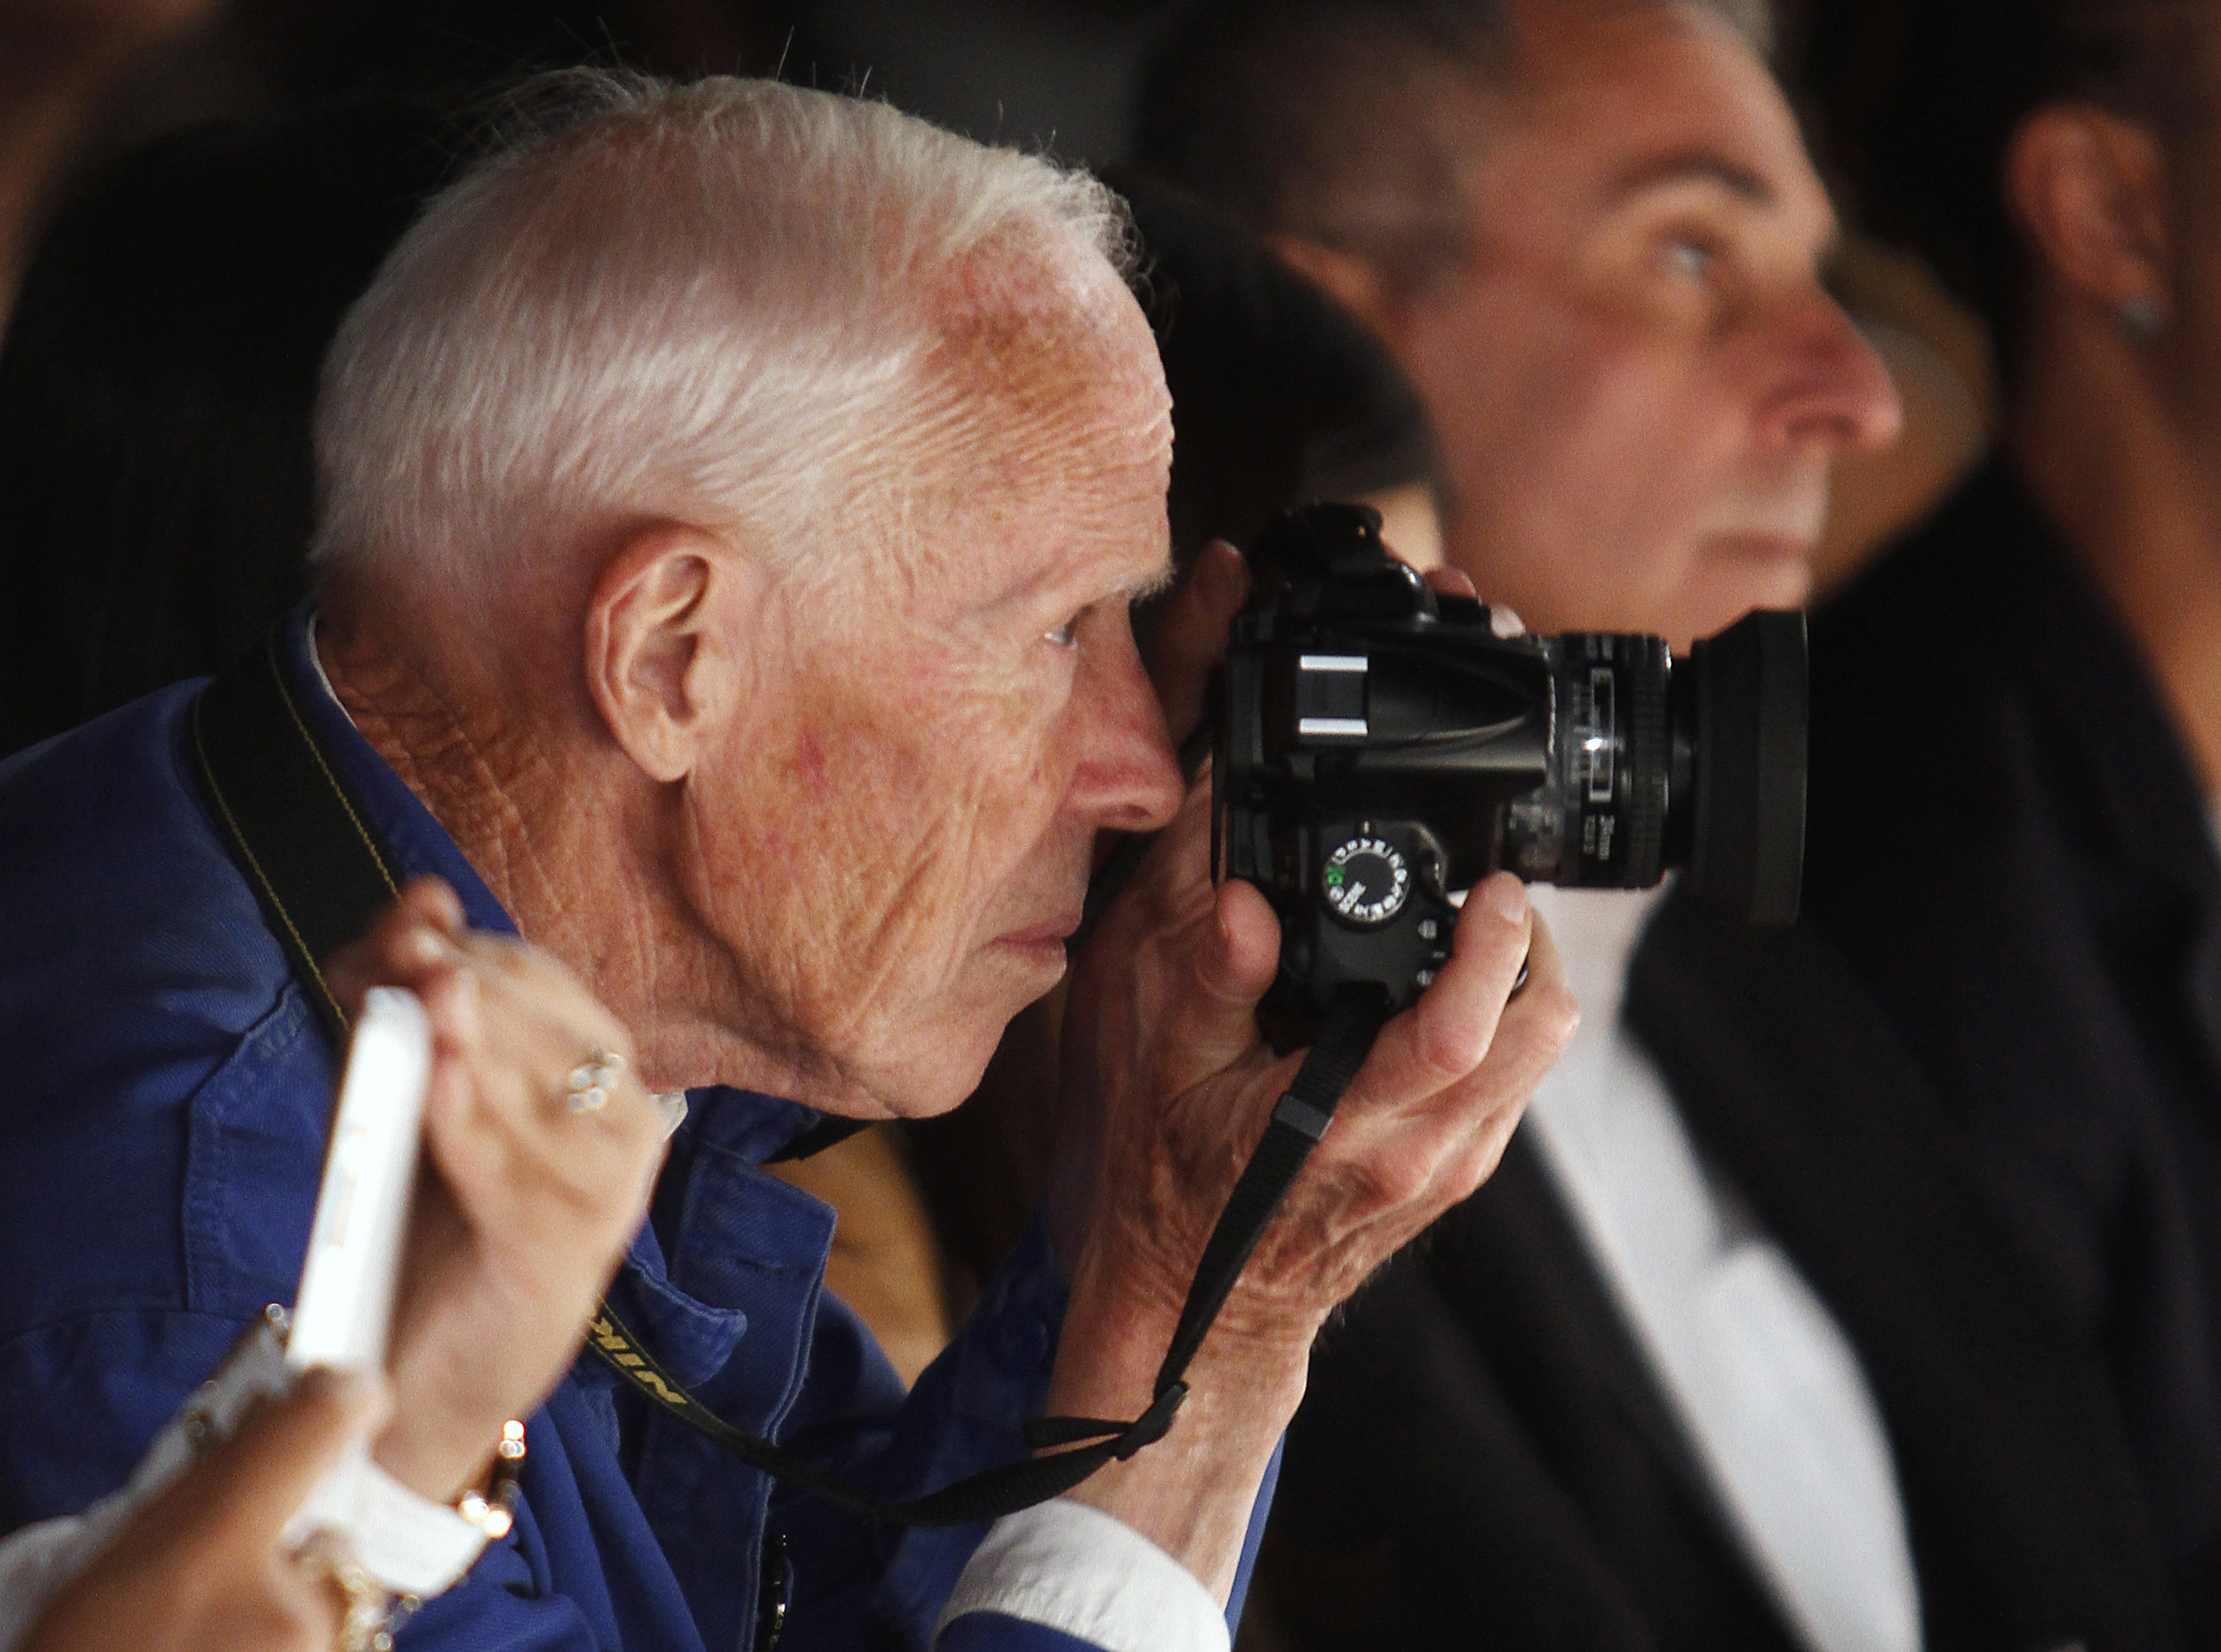 New York Times photographer Bill Cunningham takes photos during the Naeem Khan Spring/Summer 2013 collection show at New York Fashion Week September 11, 2012. REUTERS/Carlo Allegri (UNITED STATES - Tags: FASHION MEDIA) - RTR37UN0